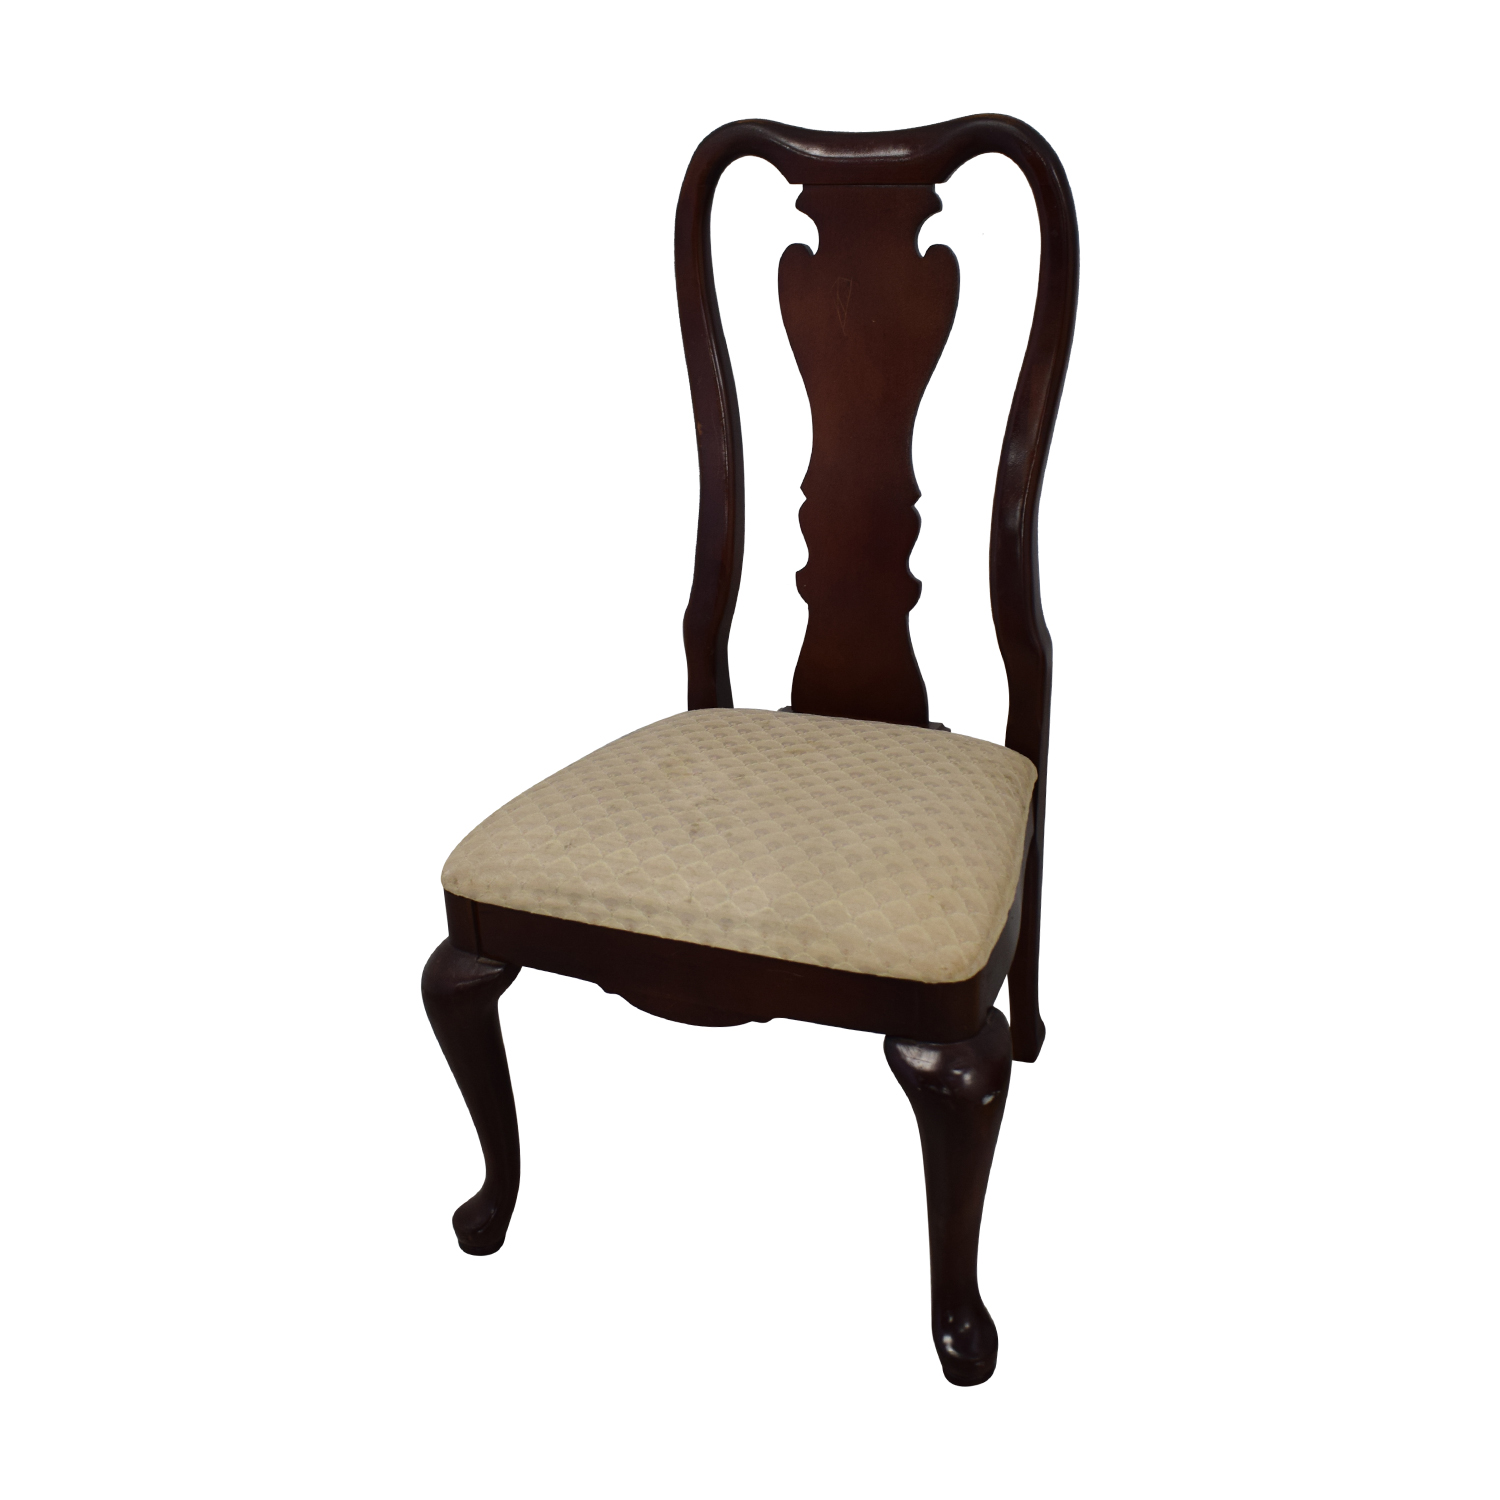 Stupendous 84 Off Thomasville Thomasville Traditional Queen Anne Style Dining Chairs Chairs Squirreltailoven Fun Painted Chair Ideas Images Squirreltailovenorg